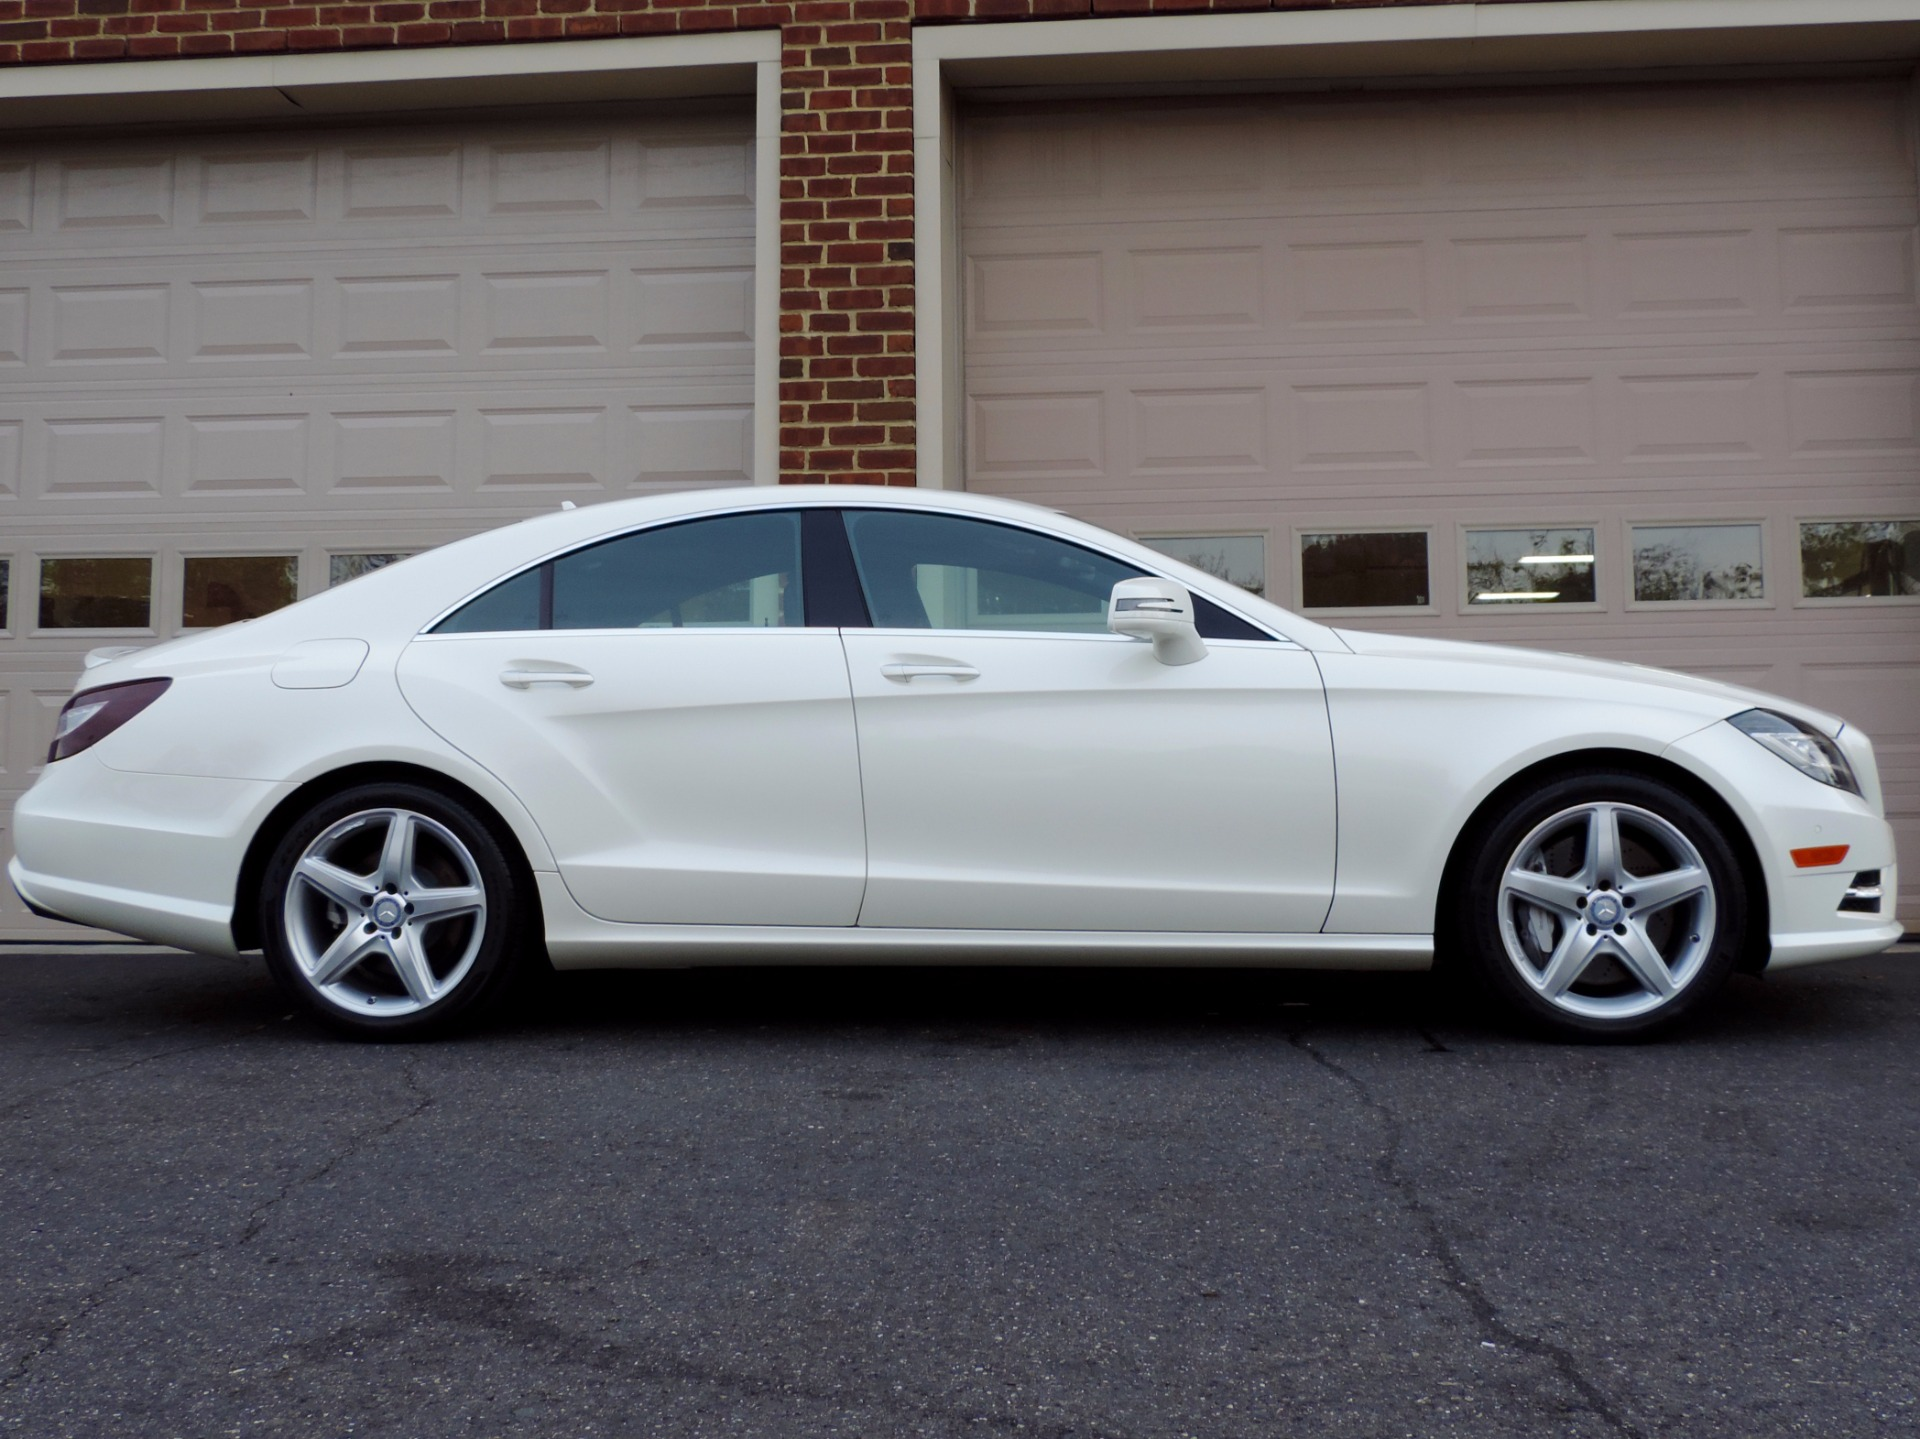 2014 mercedes benz cls cls 550 4matic stock 124882 for for Mercedes benz cls sale